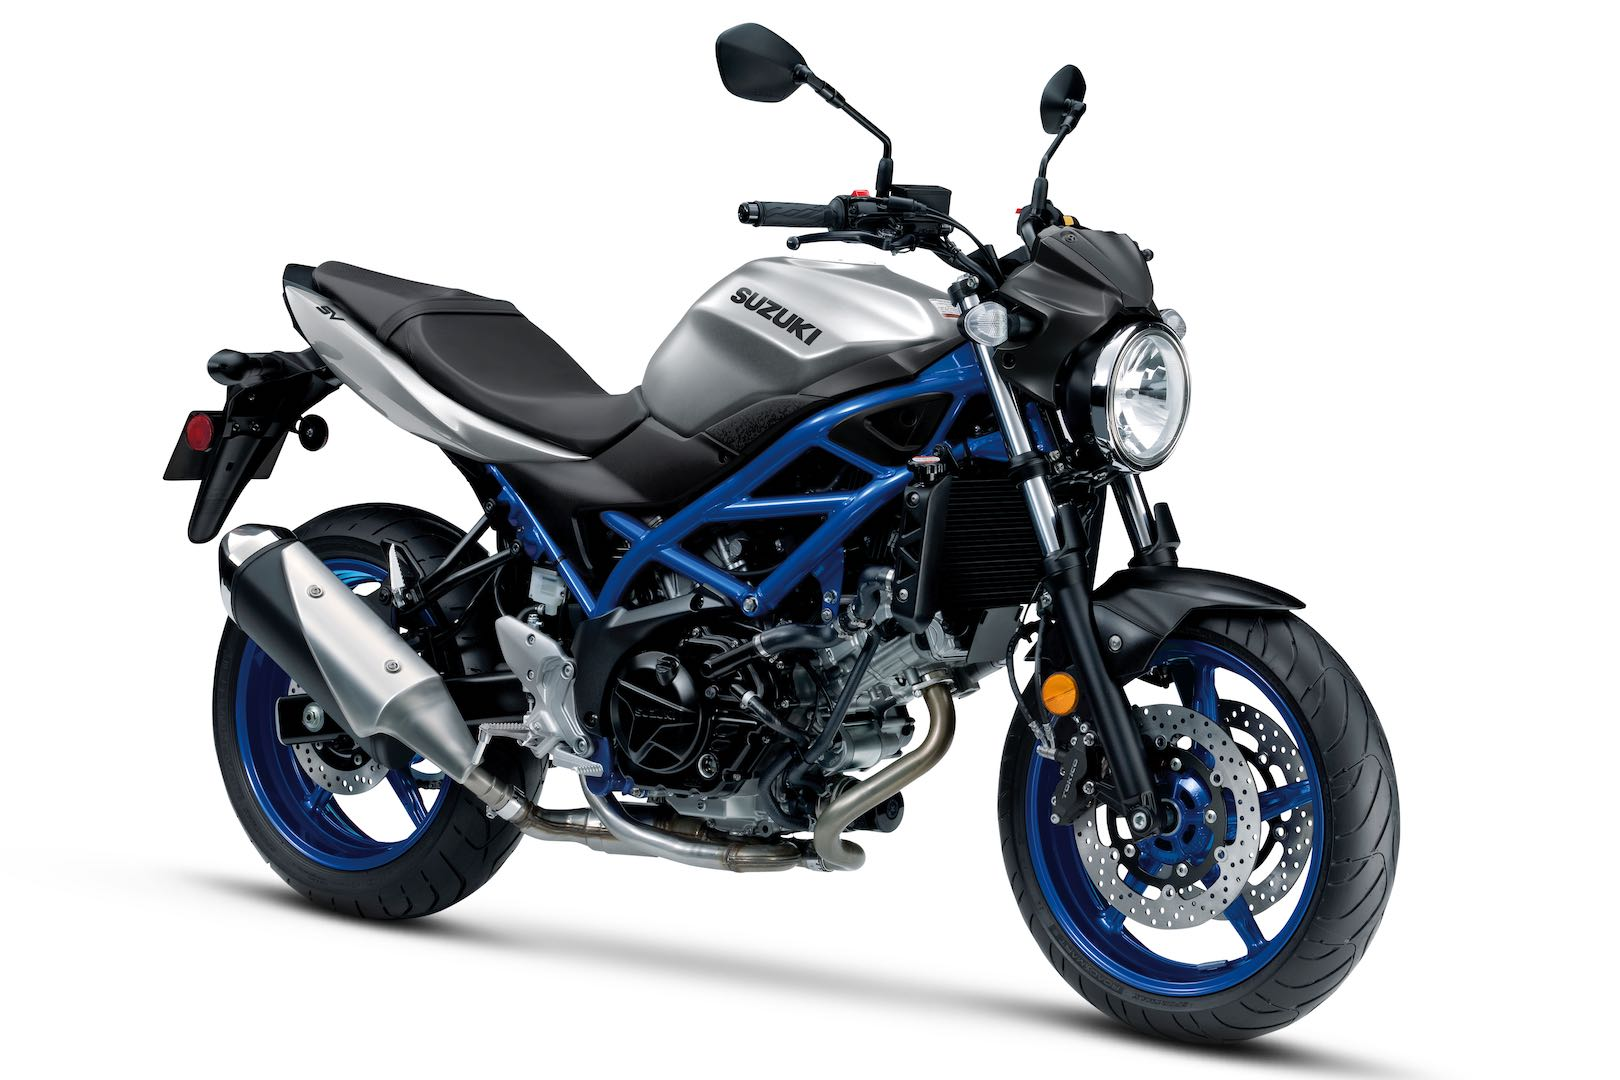 2020 Suzuki SV650 (ABS) Buyer's Guide: Specs & Prices